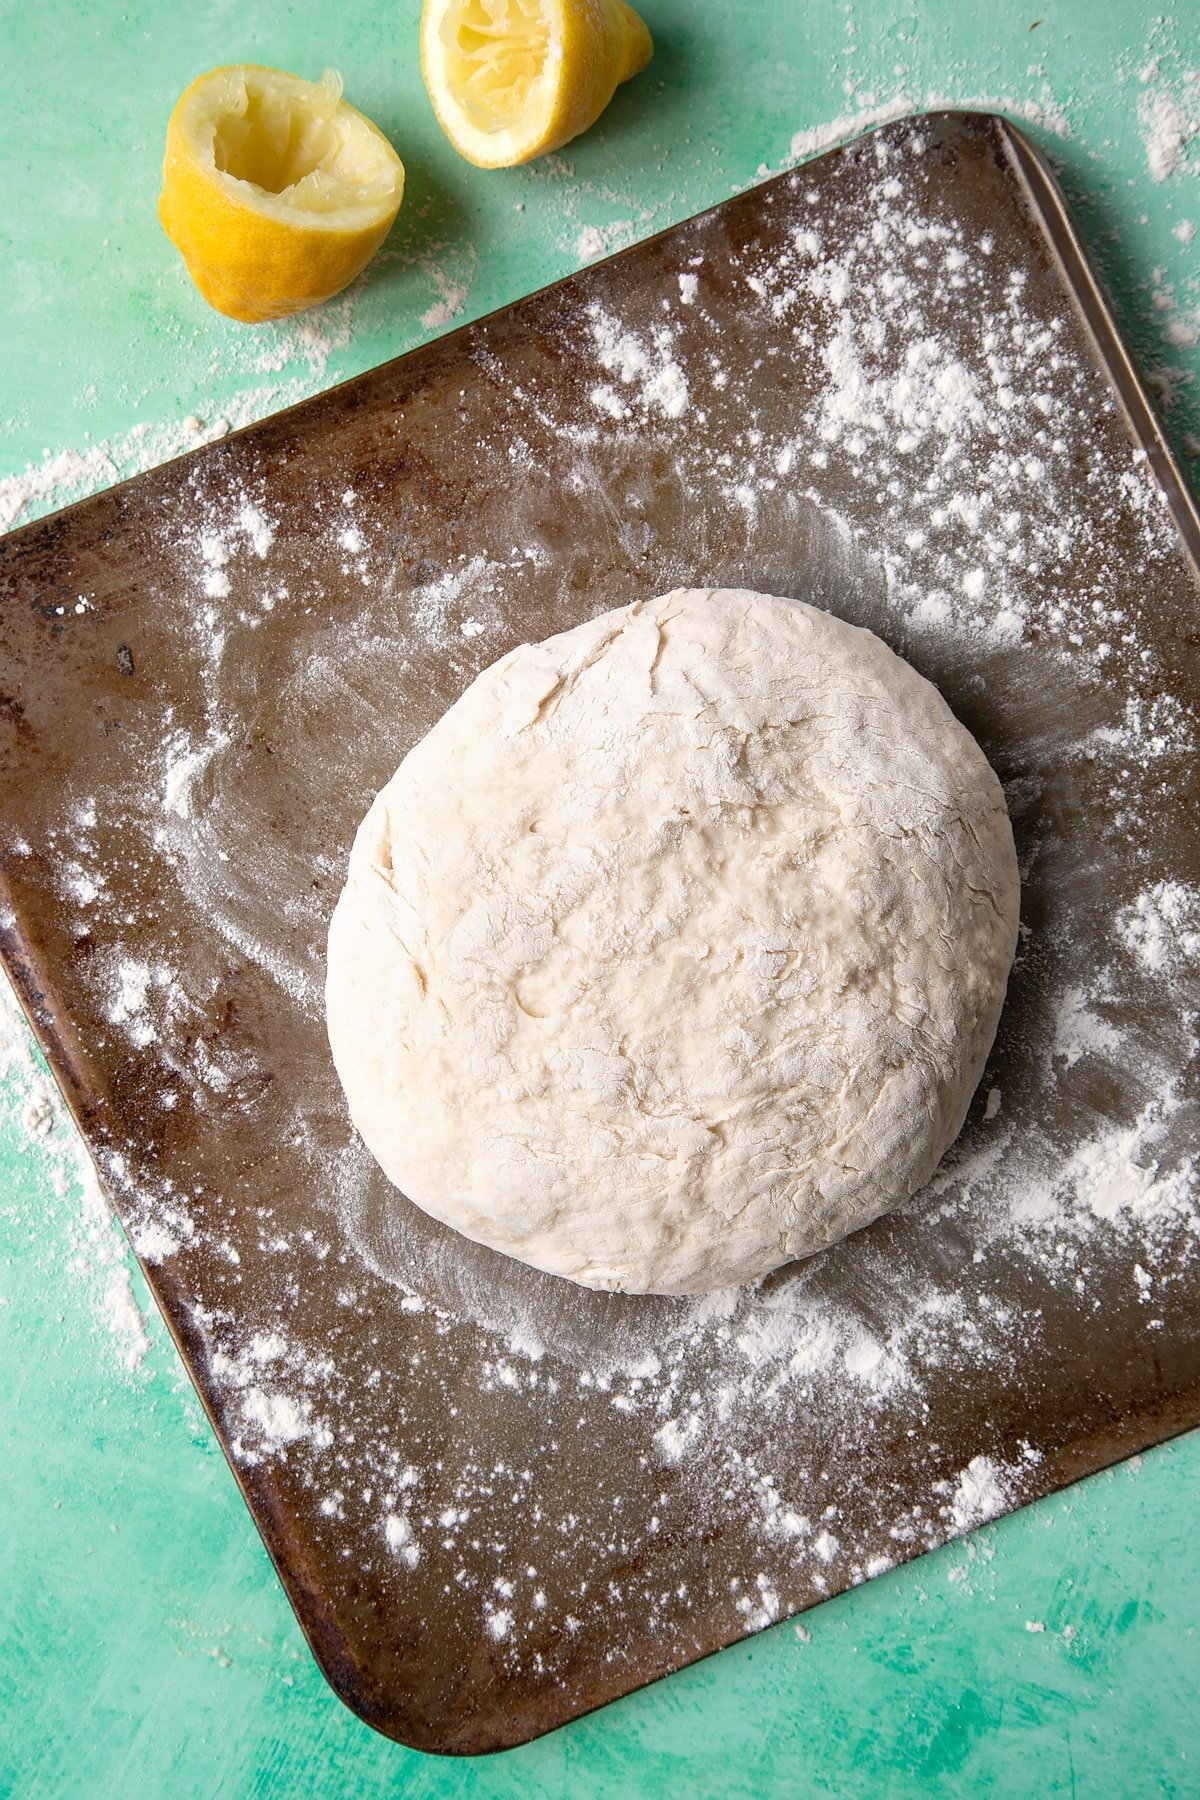 Dough to make a soda bread recipe without buttermilk placed on a floured baking sheet.